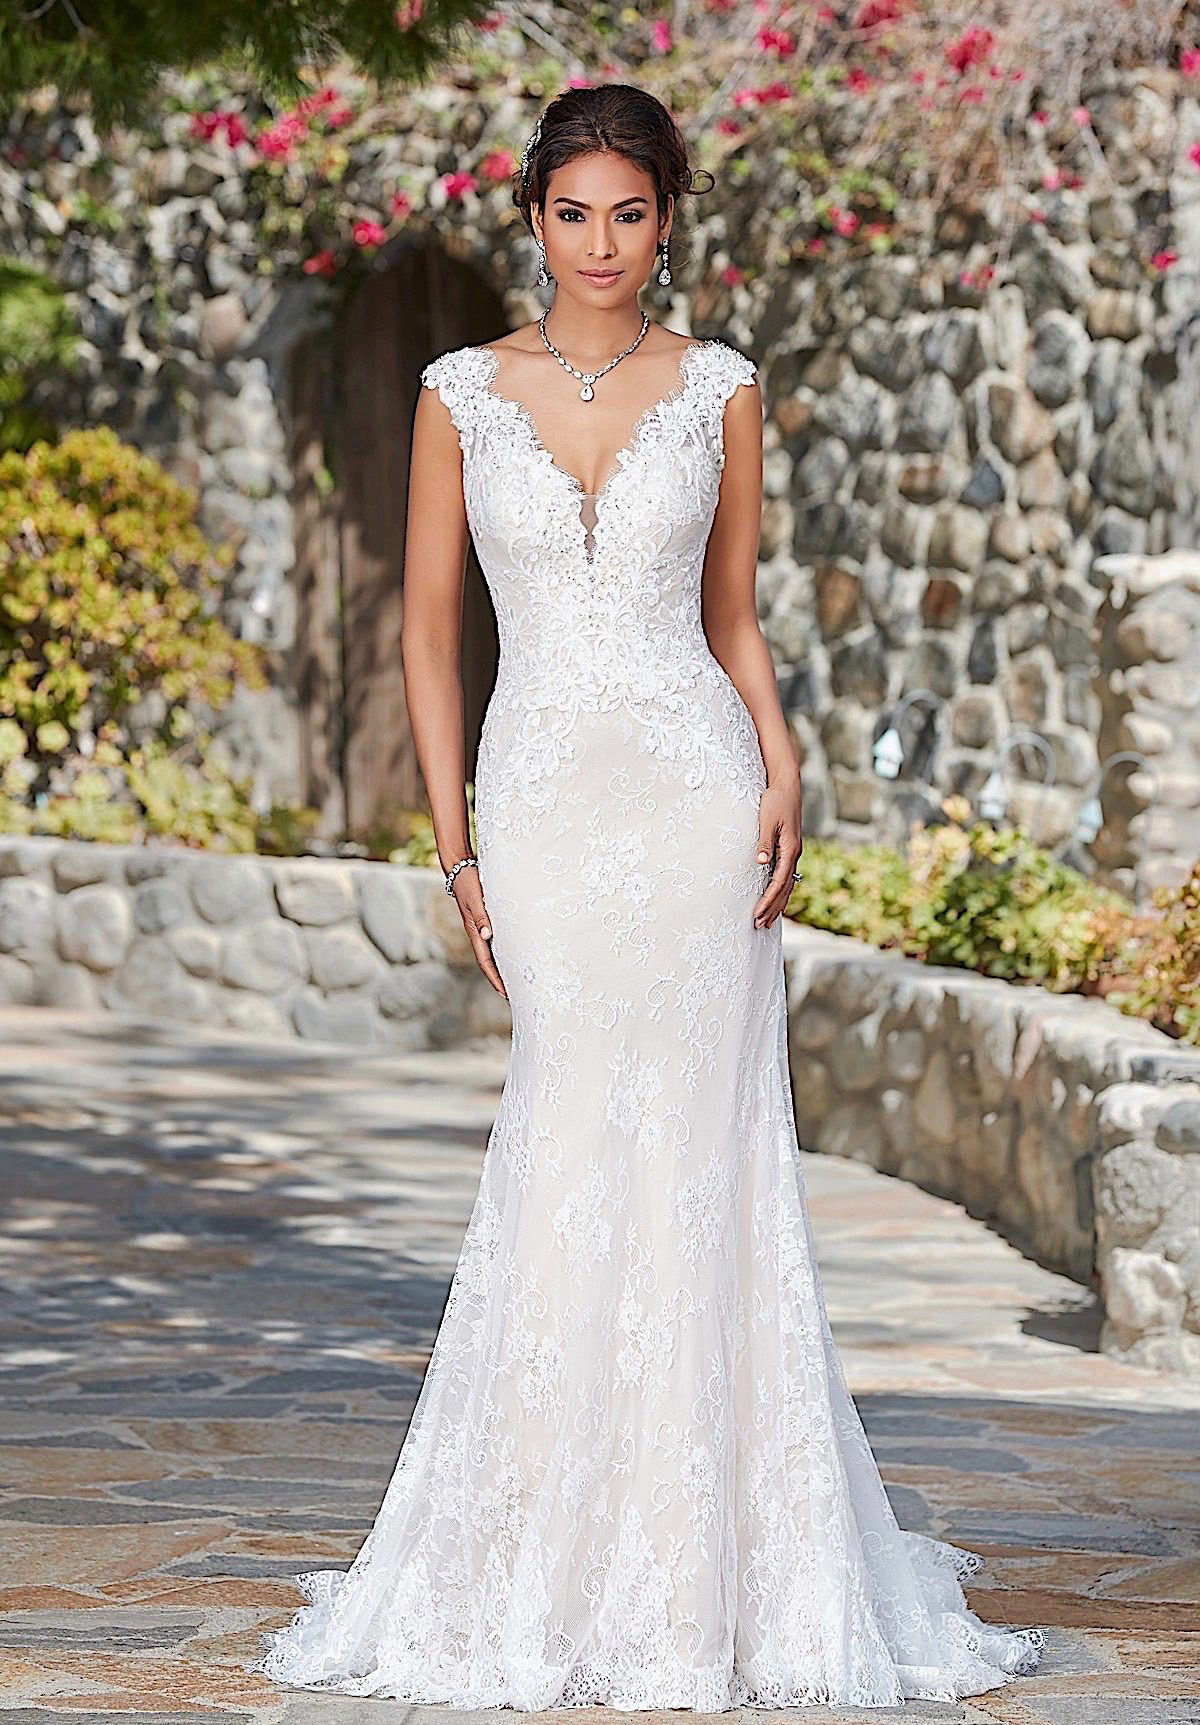 Wedding Gowns Gold Coast | Bridal Dresses and Gowns in ...